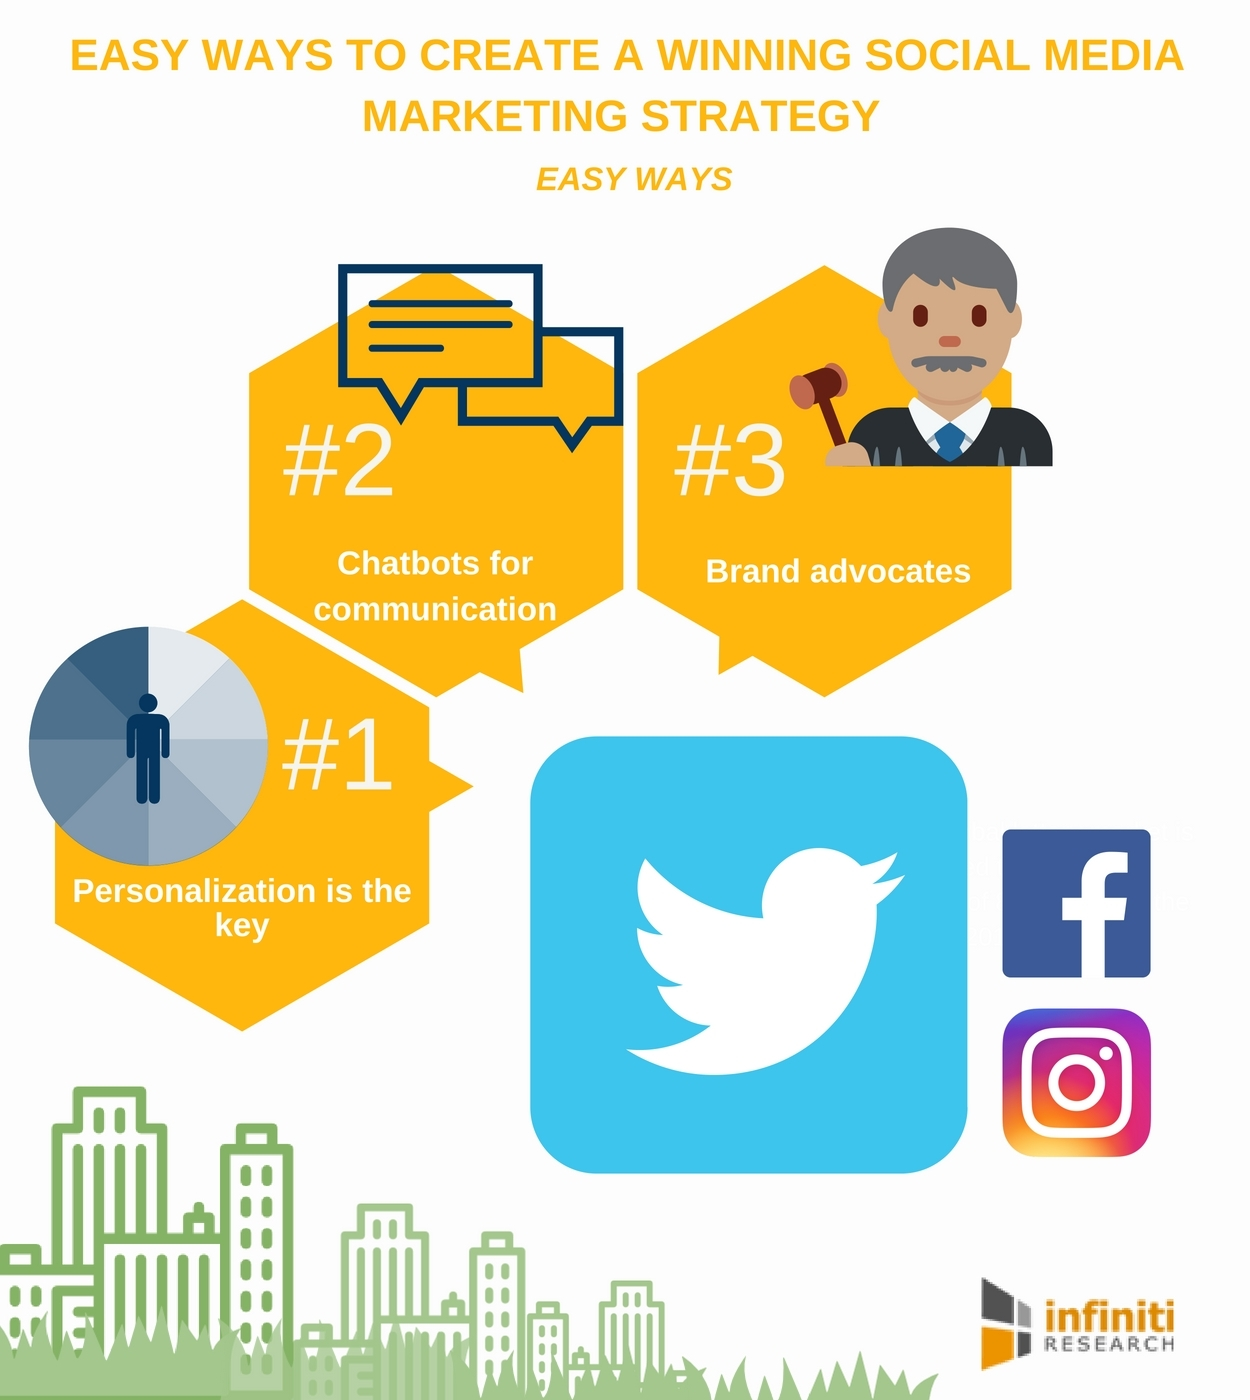 Create a Winning Social Media Marketing Strategy in 5 Easy Ways